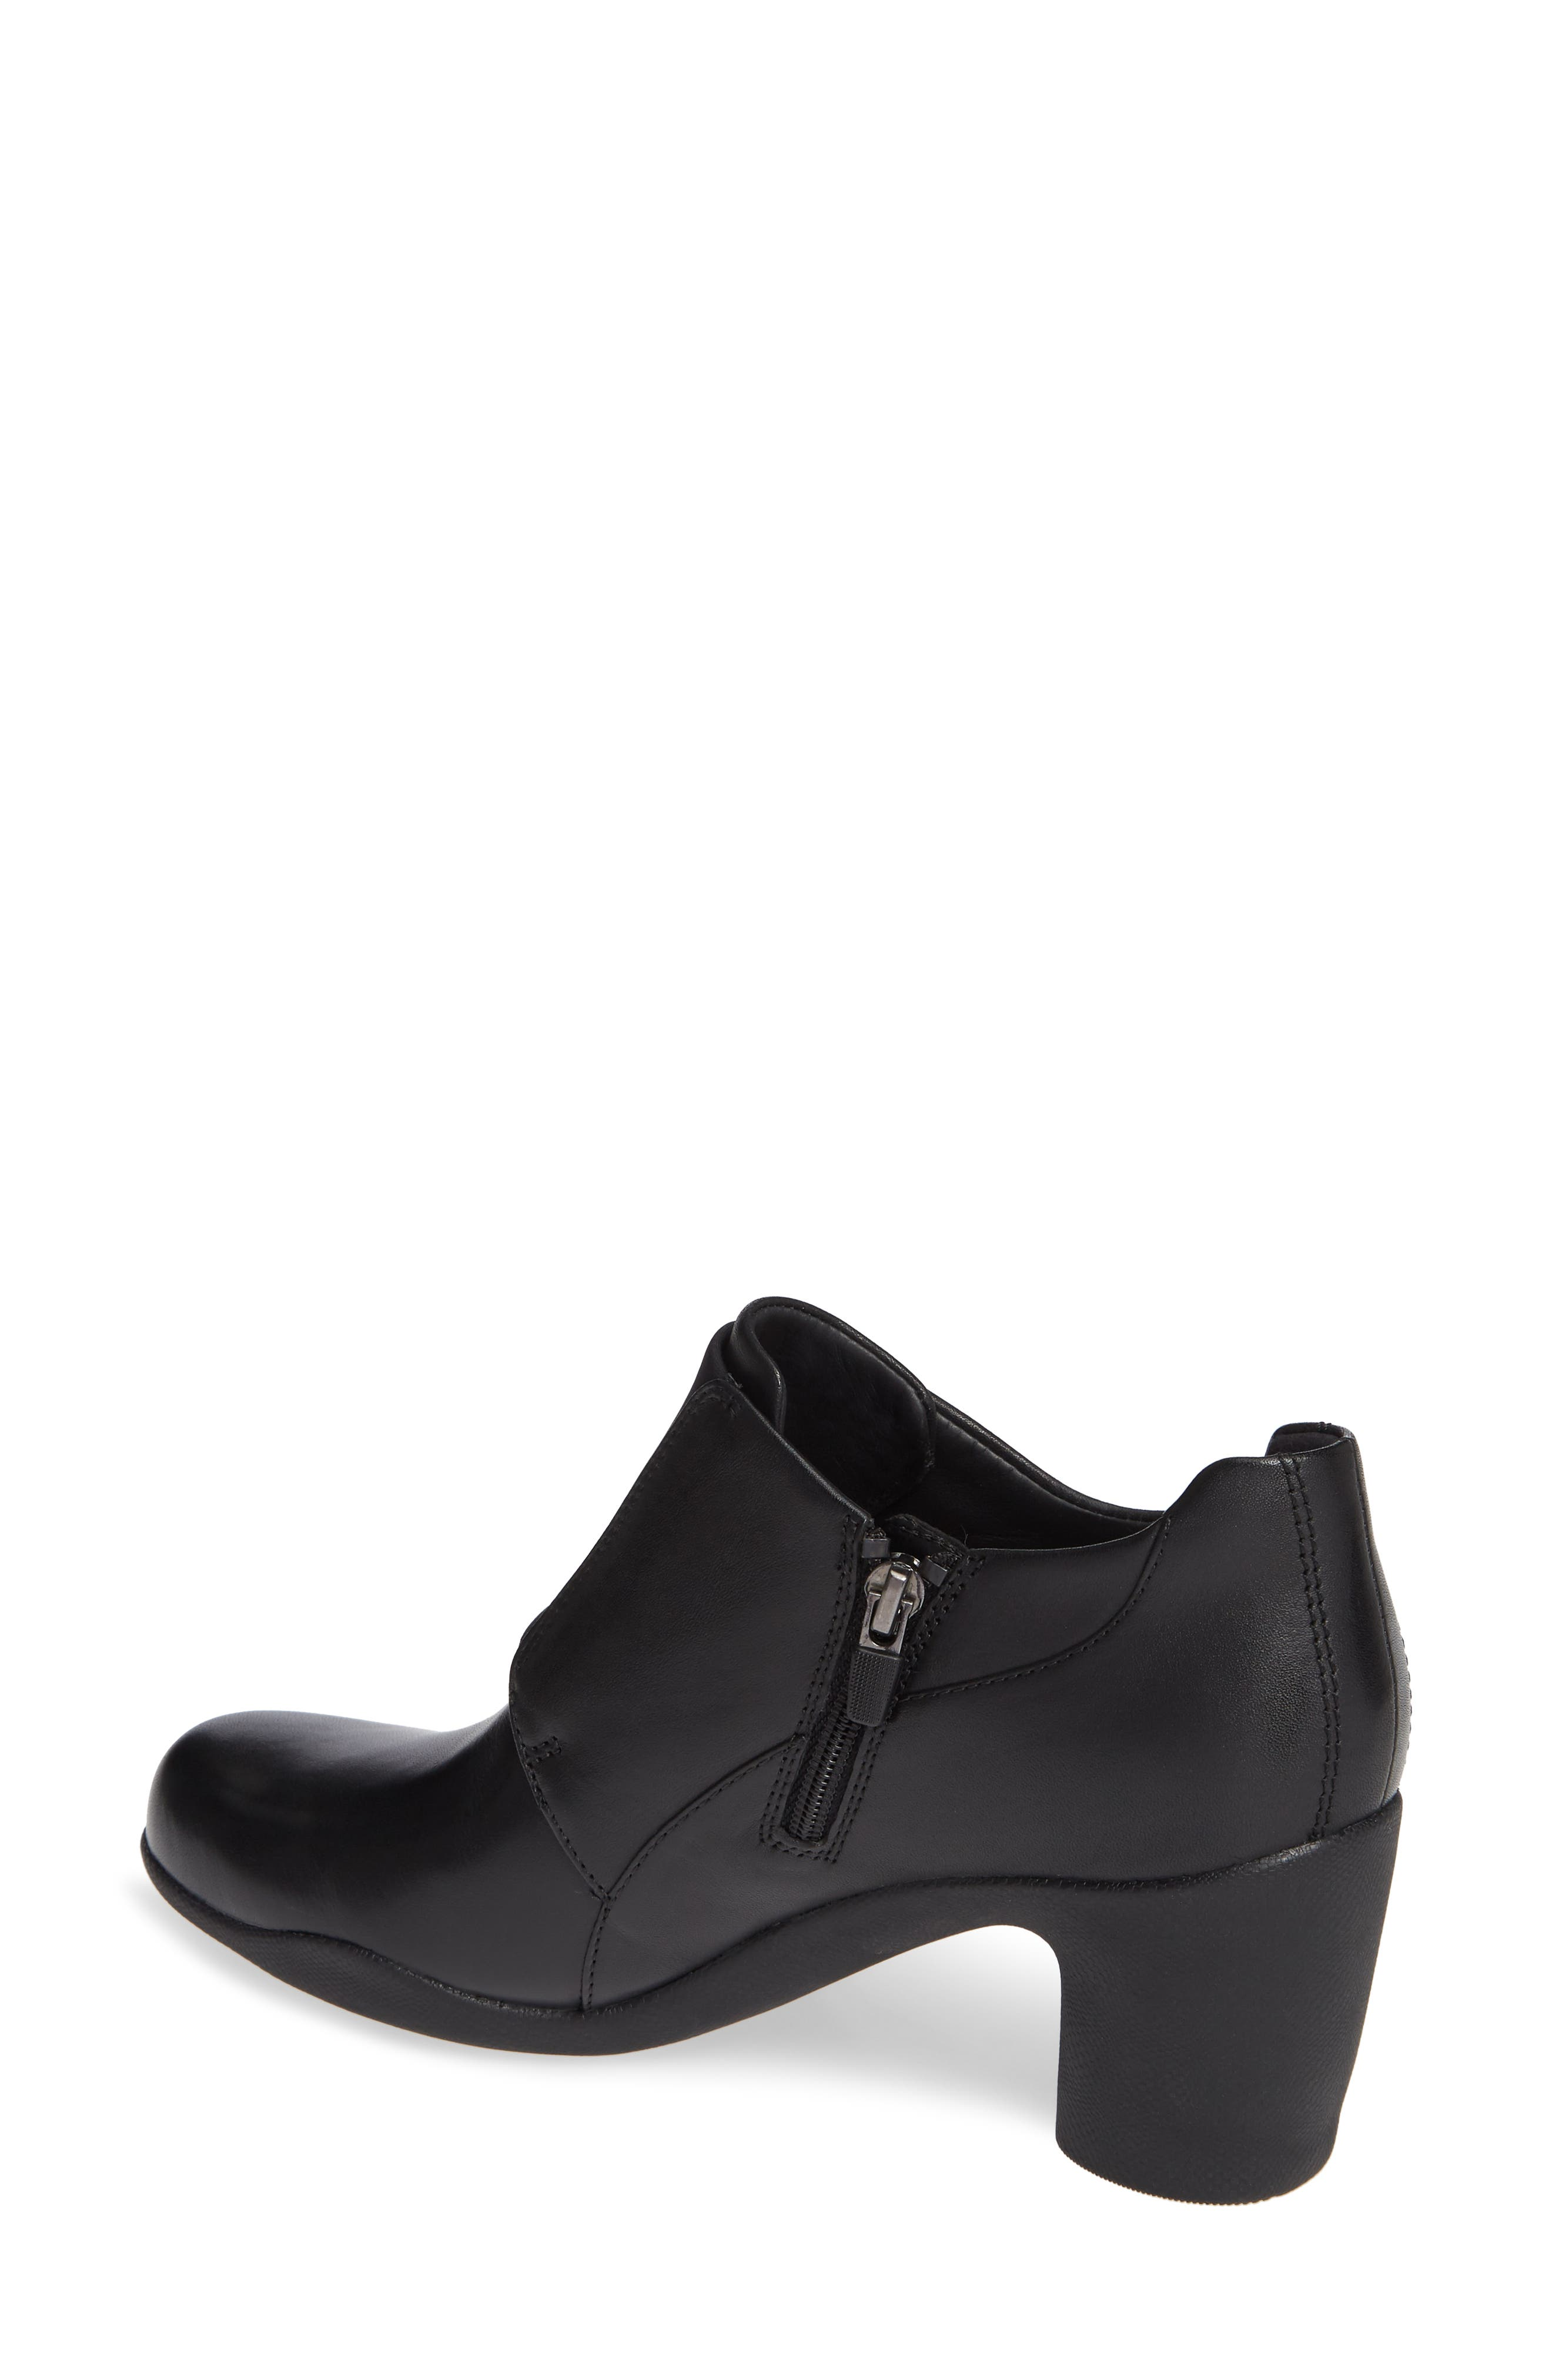 CLARKS<SUP>®</SUP>, Un Rosa Zip Bootie, Alternate thumbnail 2, color, BLACK LEATHER